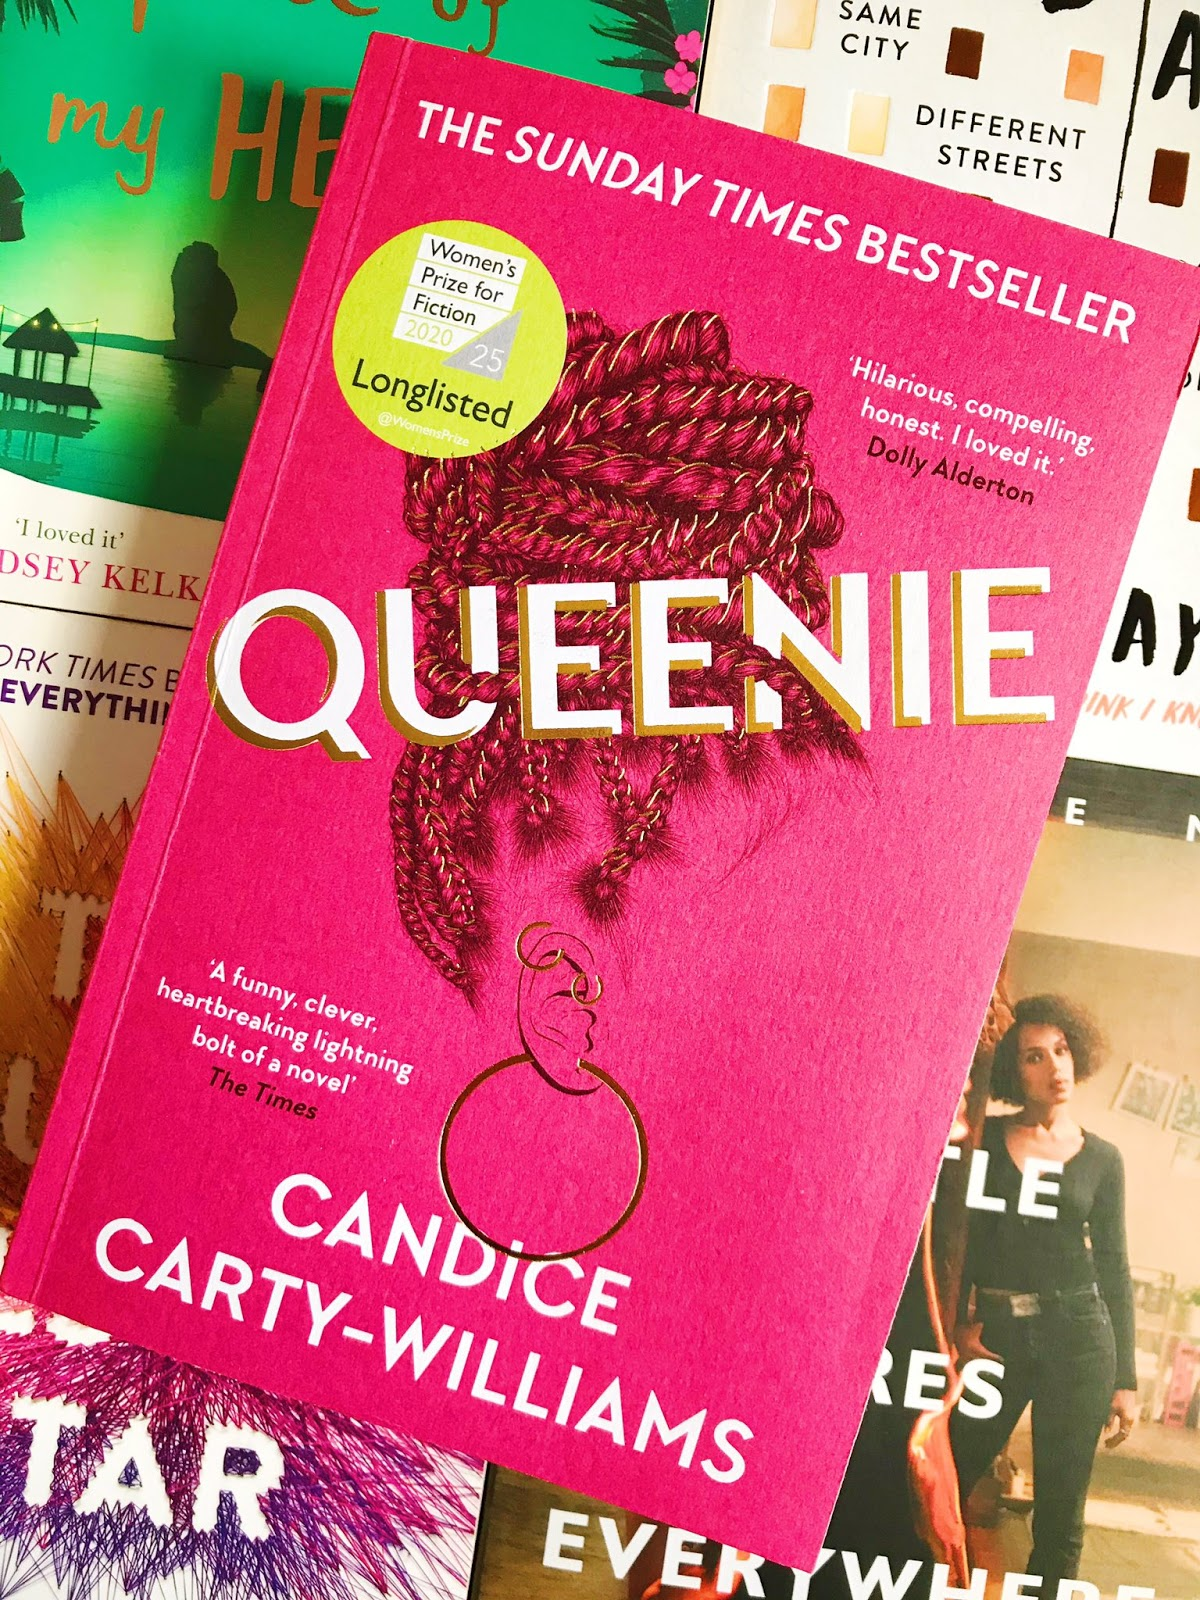 Queenie by Candice Carty-Williams laid flat on top of 4 other books